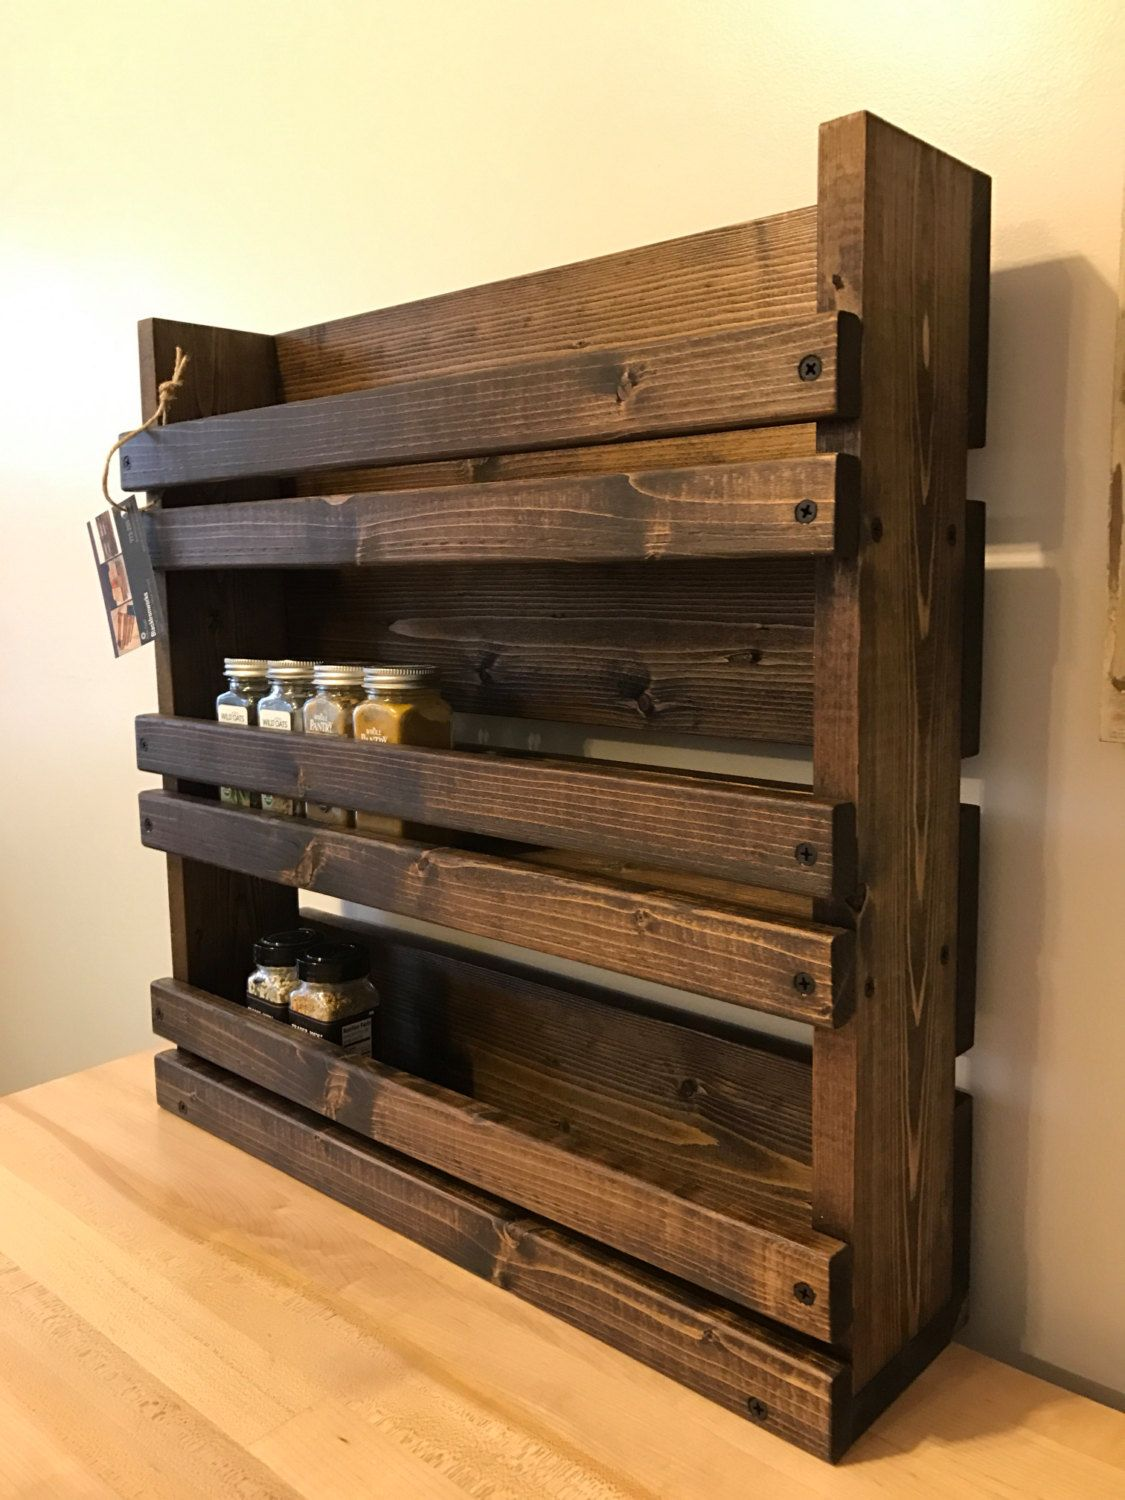 Wood Spice Rack For Wall Unique Spice Up Your Kitchen With Our Simple And Rustic Style Solid Wood 2018